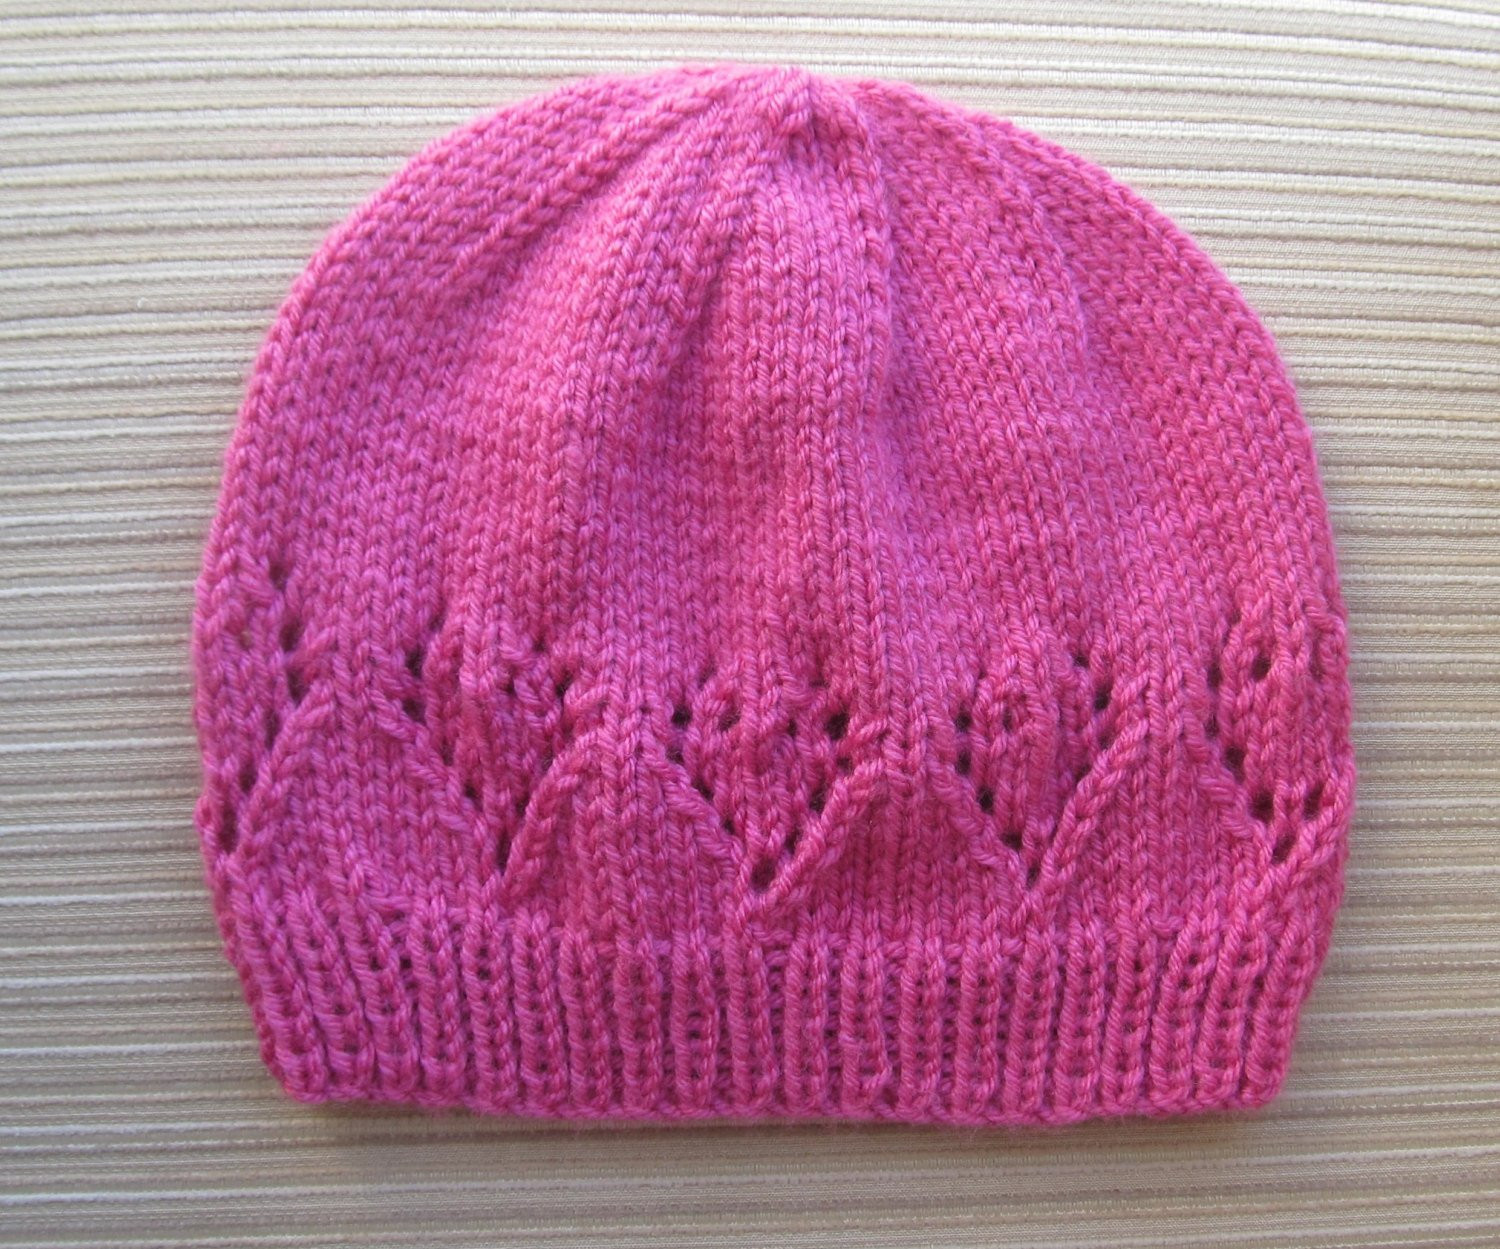 Elegant Knitting Pattern 144 Hat with Lacy Hearts In Size Adult Adult Hat Knitting Pattern Of Awesome 47 Images Adult Hat Knitting Pattern